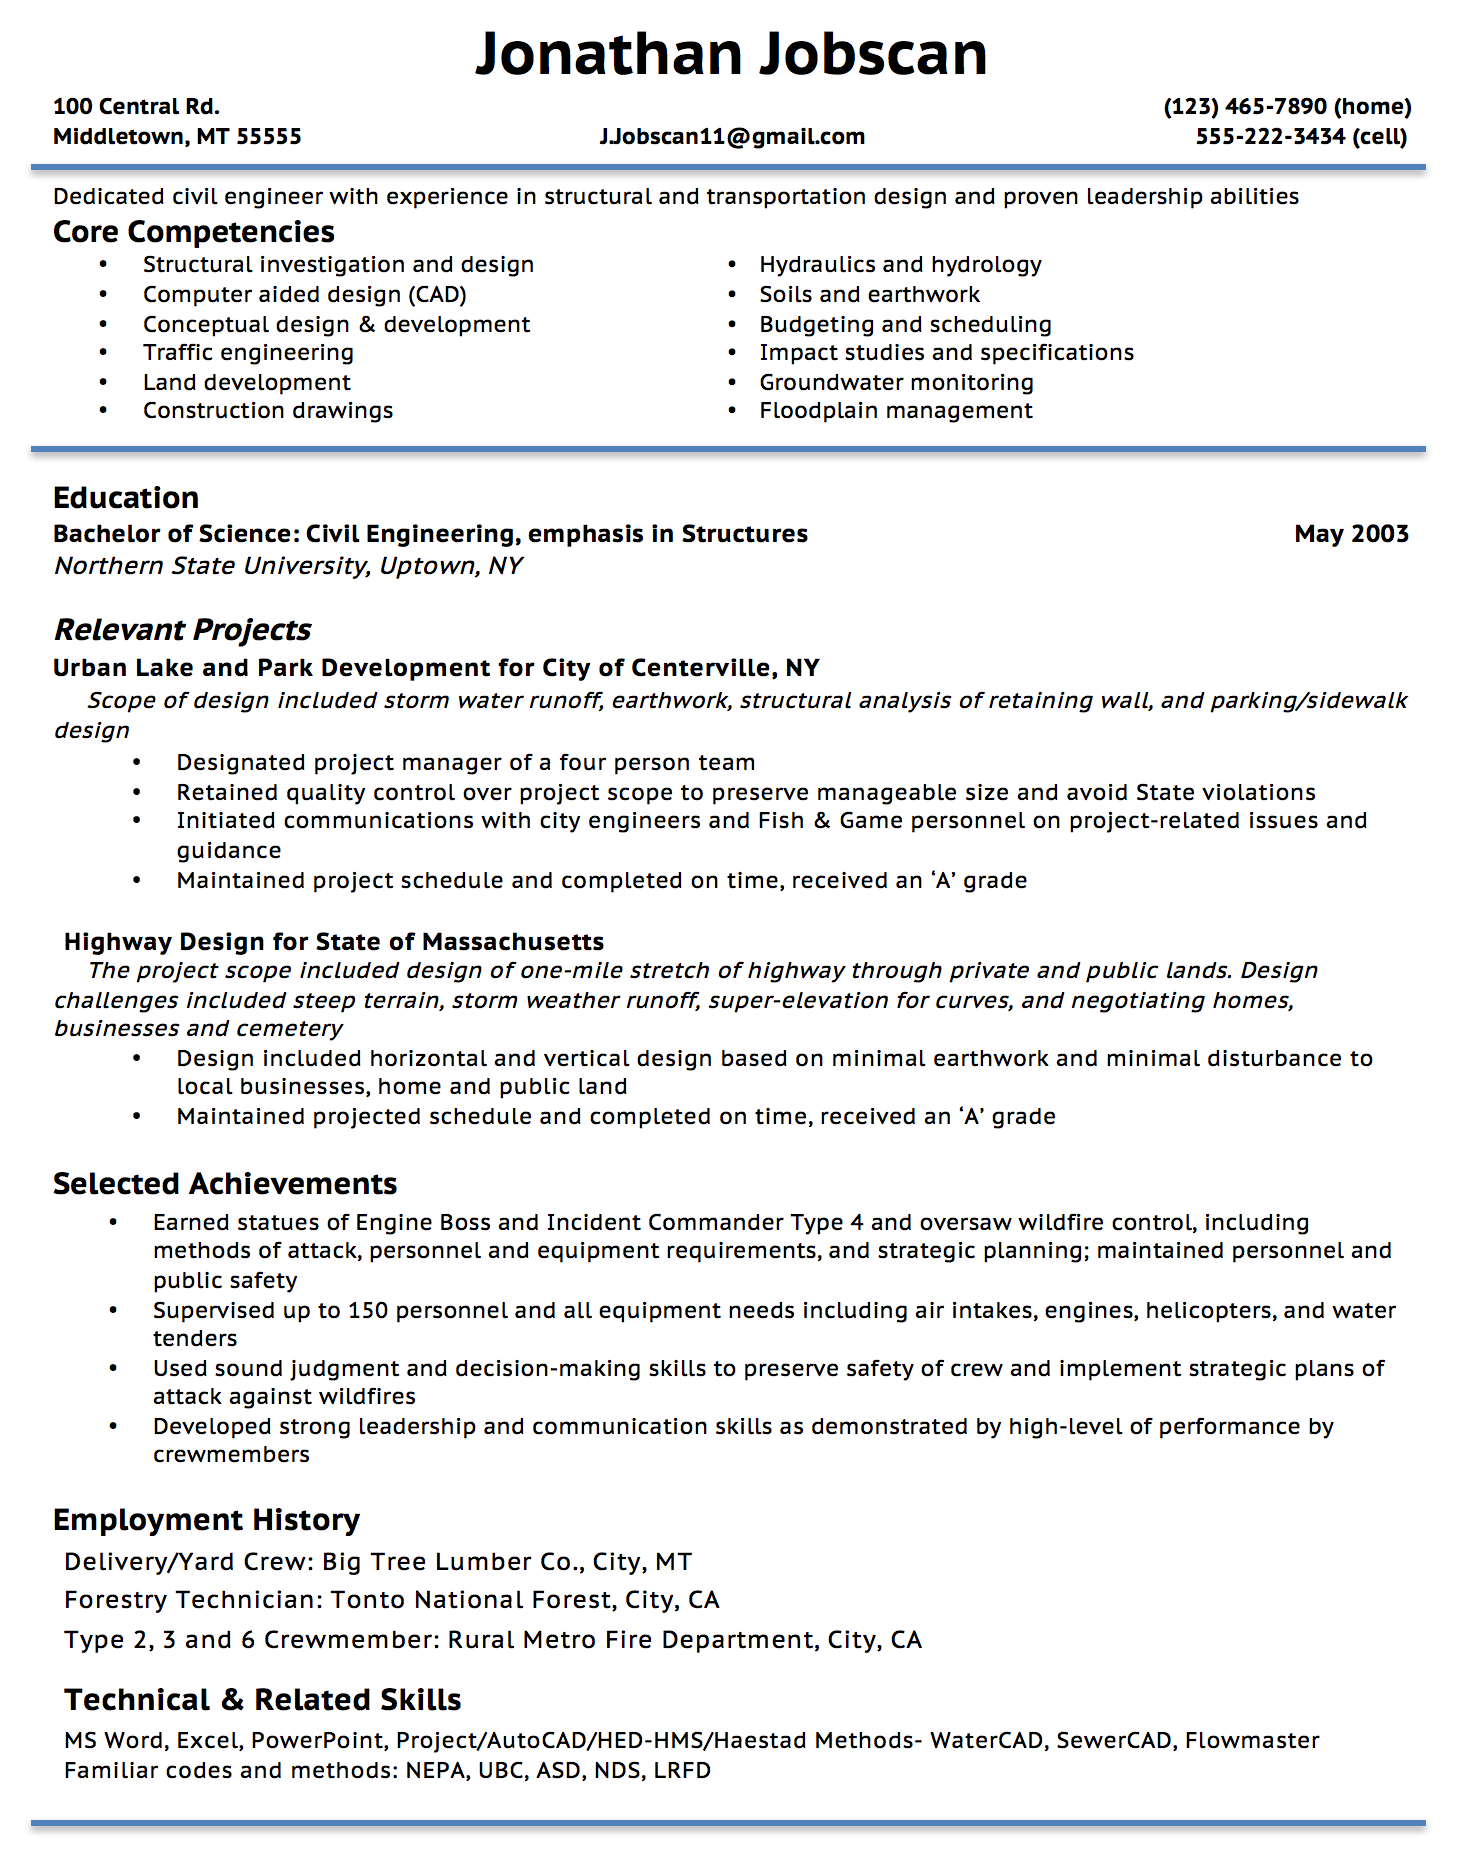 Opposenewapstandardsus  Splendid Resume Writing Guide  Jobscan With Outstanding Example Of A Functional Resume Format With Alluring Medical Technologist Resume Also Accounting Assistant Resume In Addition Civil Engineer Resume And Examples Of Skills To Put On A Resume As Well As How To Make A Resume Stand Out Additionally What Not To Put On A Resume From Jobscanco With Opposenewapstandardsus  Outstanding Resume Writing Guide  Jobscan With Alluring Example Of A Functional Resume Format And Splendid Medical Technologist Resume Also Accounting Assistant Resume In Addition Civil Engineer Resume From Jobscanco